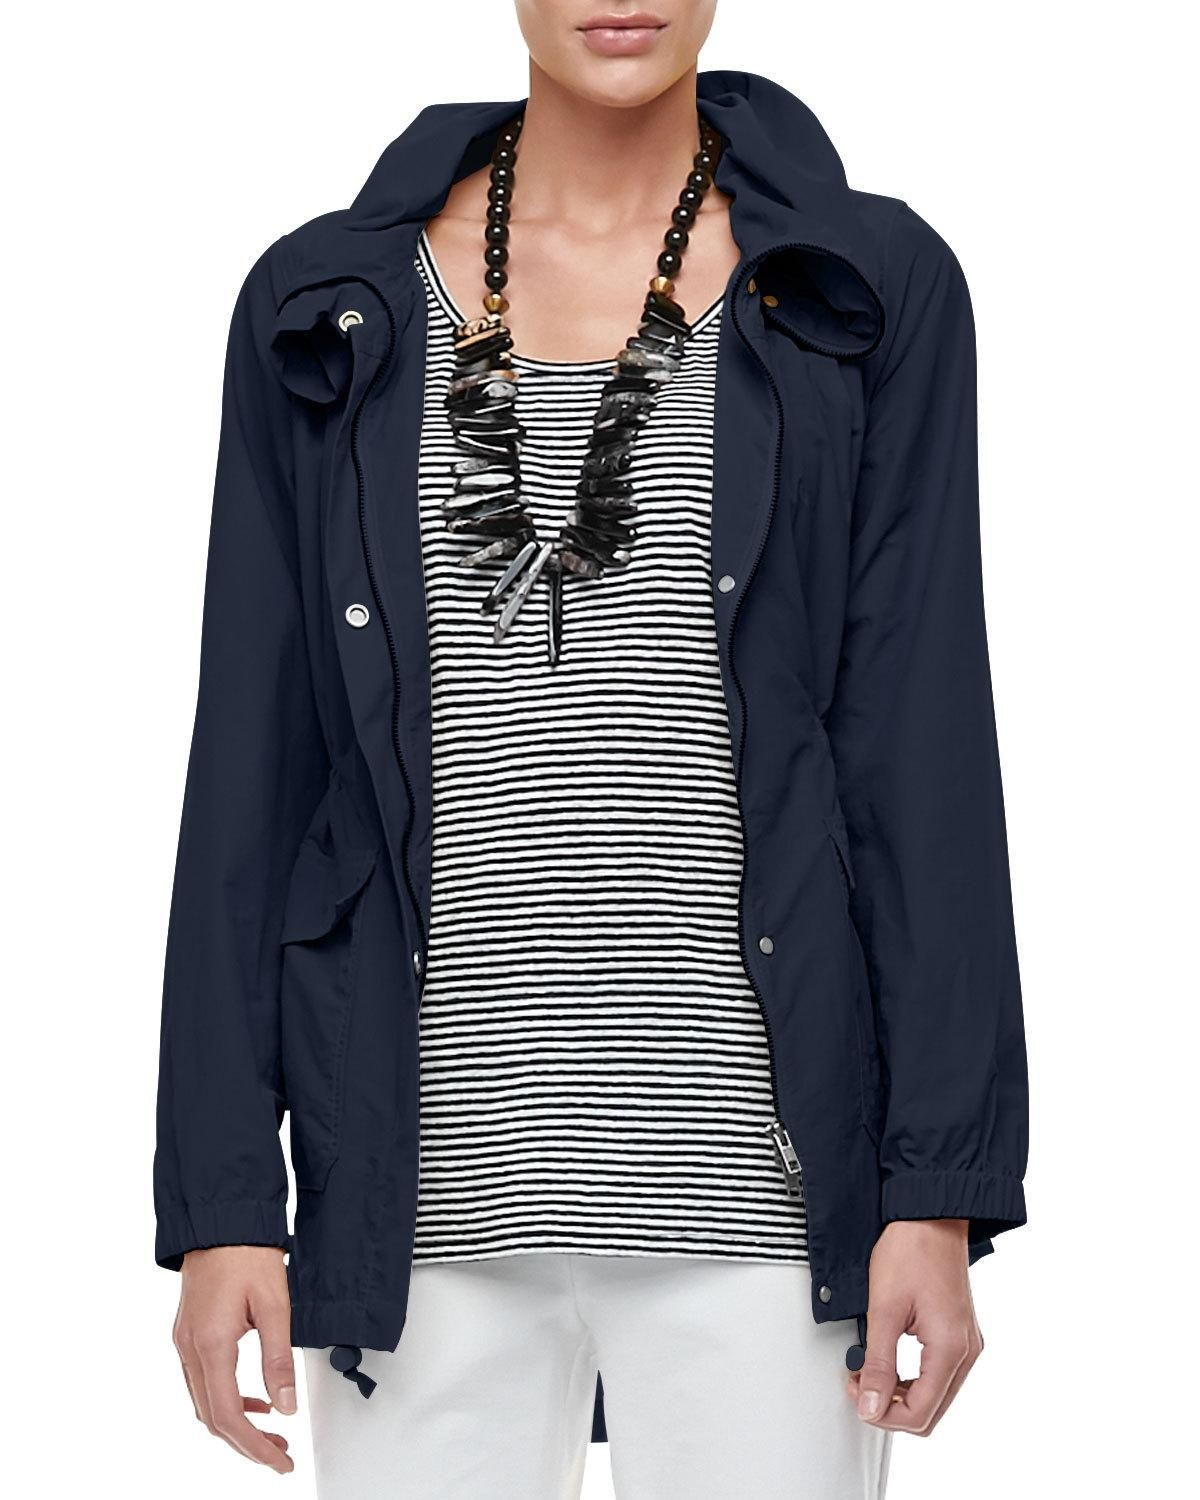 Eileen Fisher High-Collar Weather-Resistant Utility Jacket, Plus Size and Matching Items #travelwardrobesummer